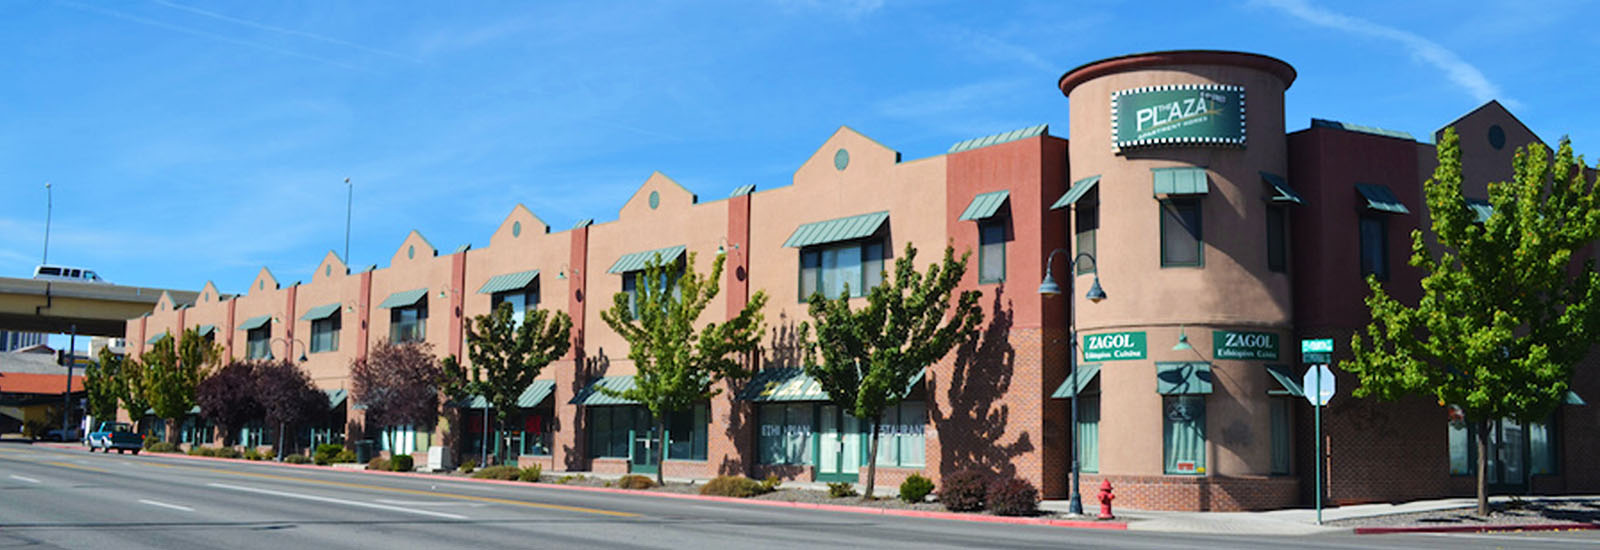 More than $1.5 million from the Washoe County HOME Consortium and City of Reno helped to create the Plaza on 4th Street, an affordable 72-unit complex.